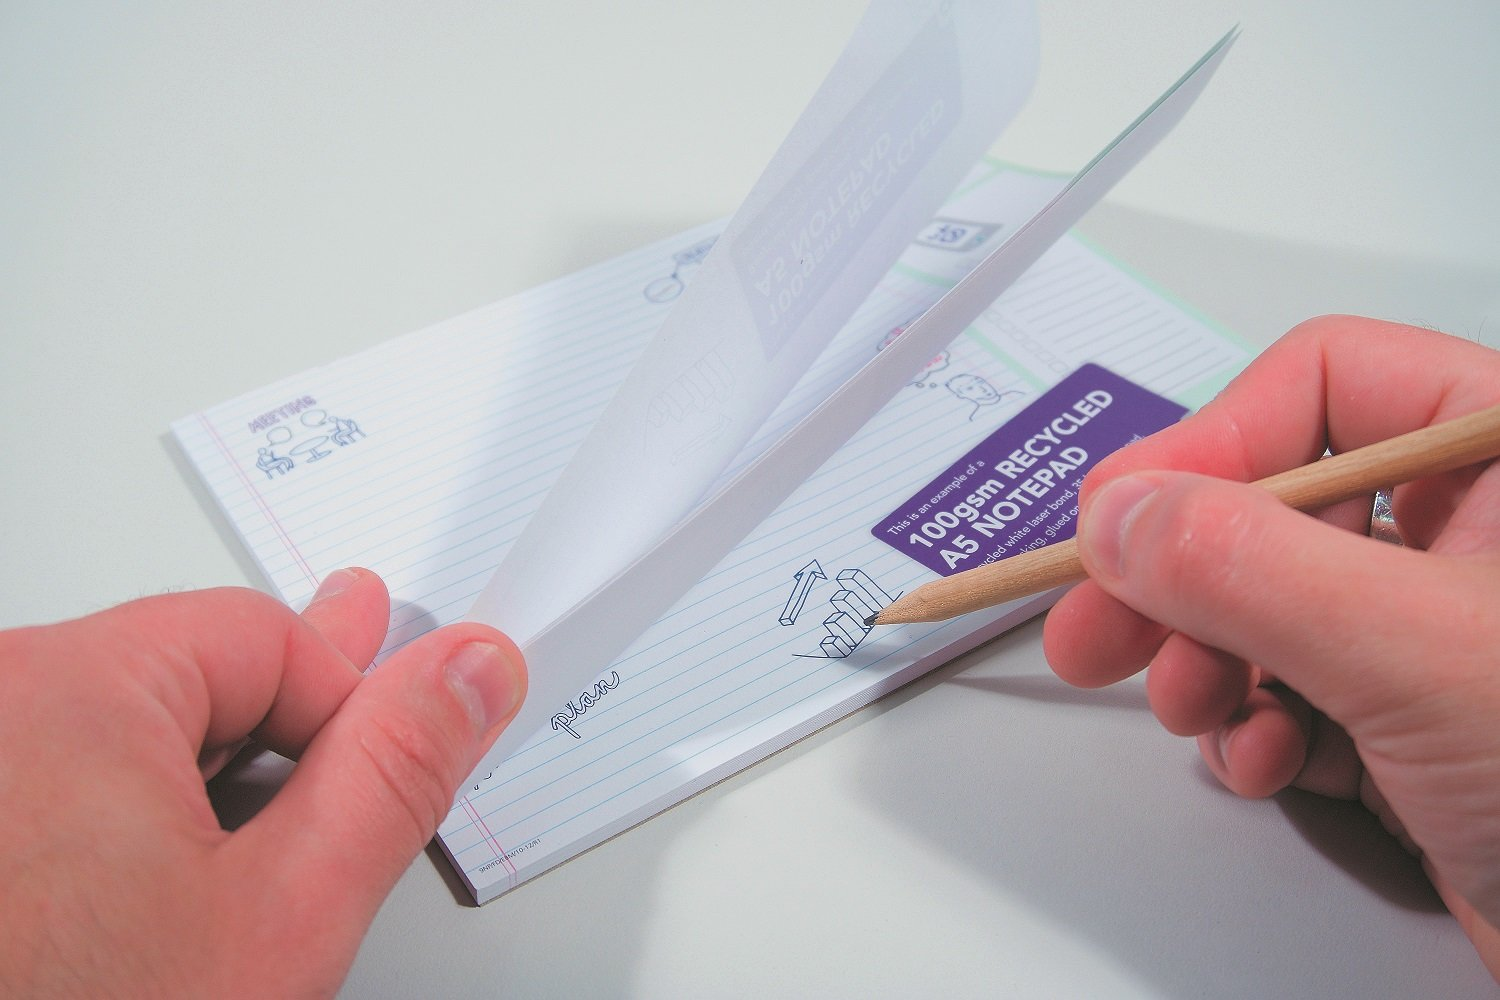 Notepads with glue binding Printing UK, Next Day Delivery - www.ontimeprint.co.uk